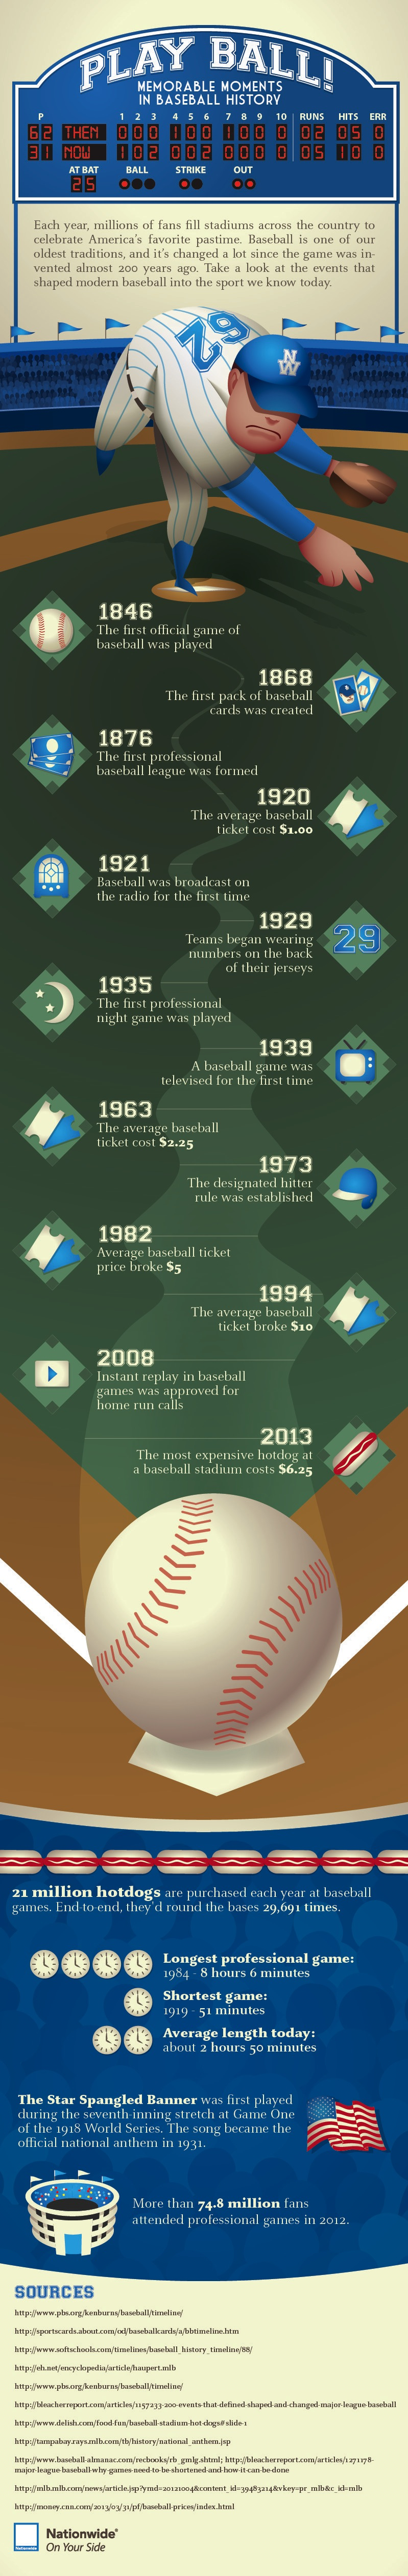 Baseball Facts Infographic